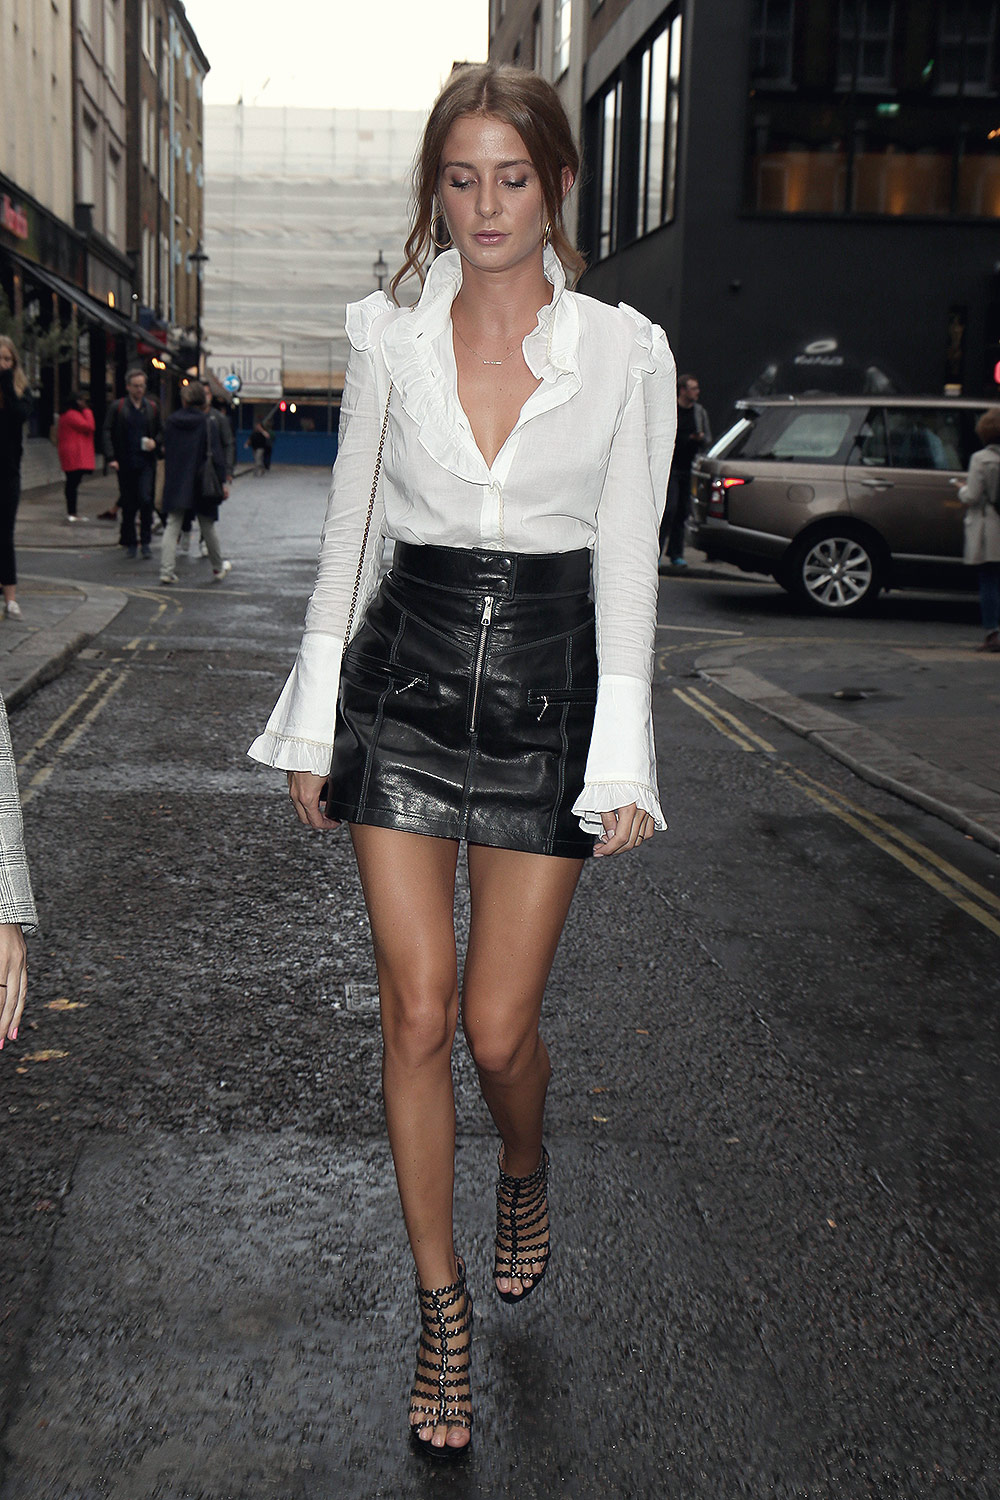 Millie Mackintosh attends Sure 'Black and White' event